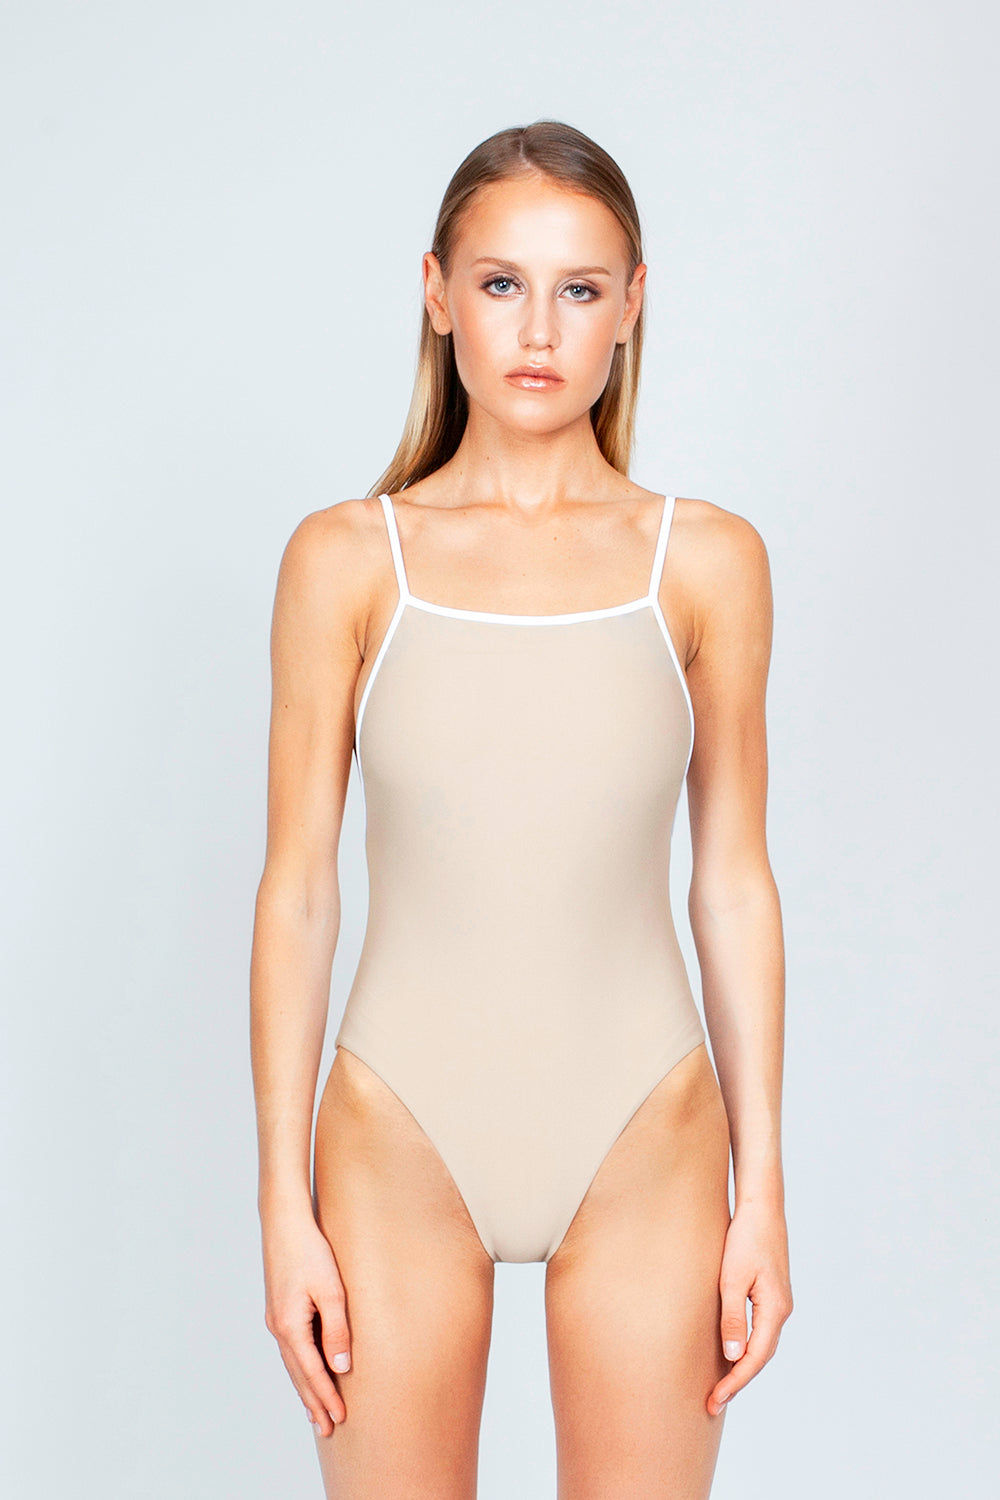 THE ONES WHO Margot High-Cut One Piece Swimsuit - Taupe Tan/White One Piece | Taupe Tan/White| The Ones Who Margot High Cut One Piece Swimsuit - Taupe Tan/White Features:   Square neckline  Adjustable shoulder straps High cut leg  Cheeky - moderate coverage  Made in LA  Fabric: 80% Nylon 20% Elastane Front View